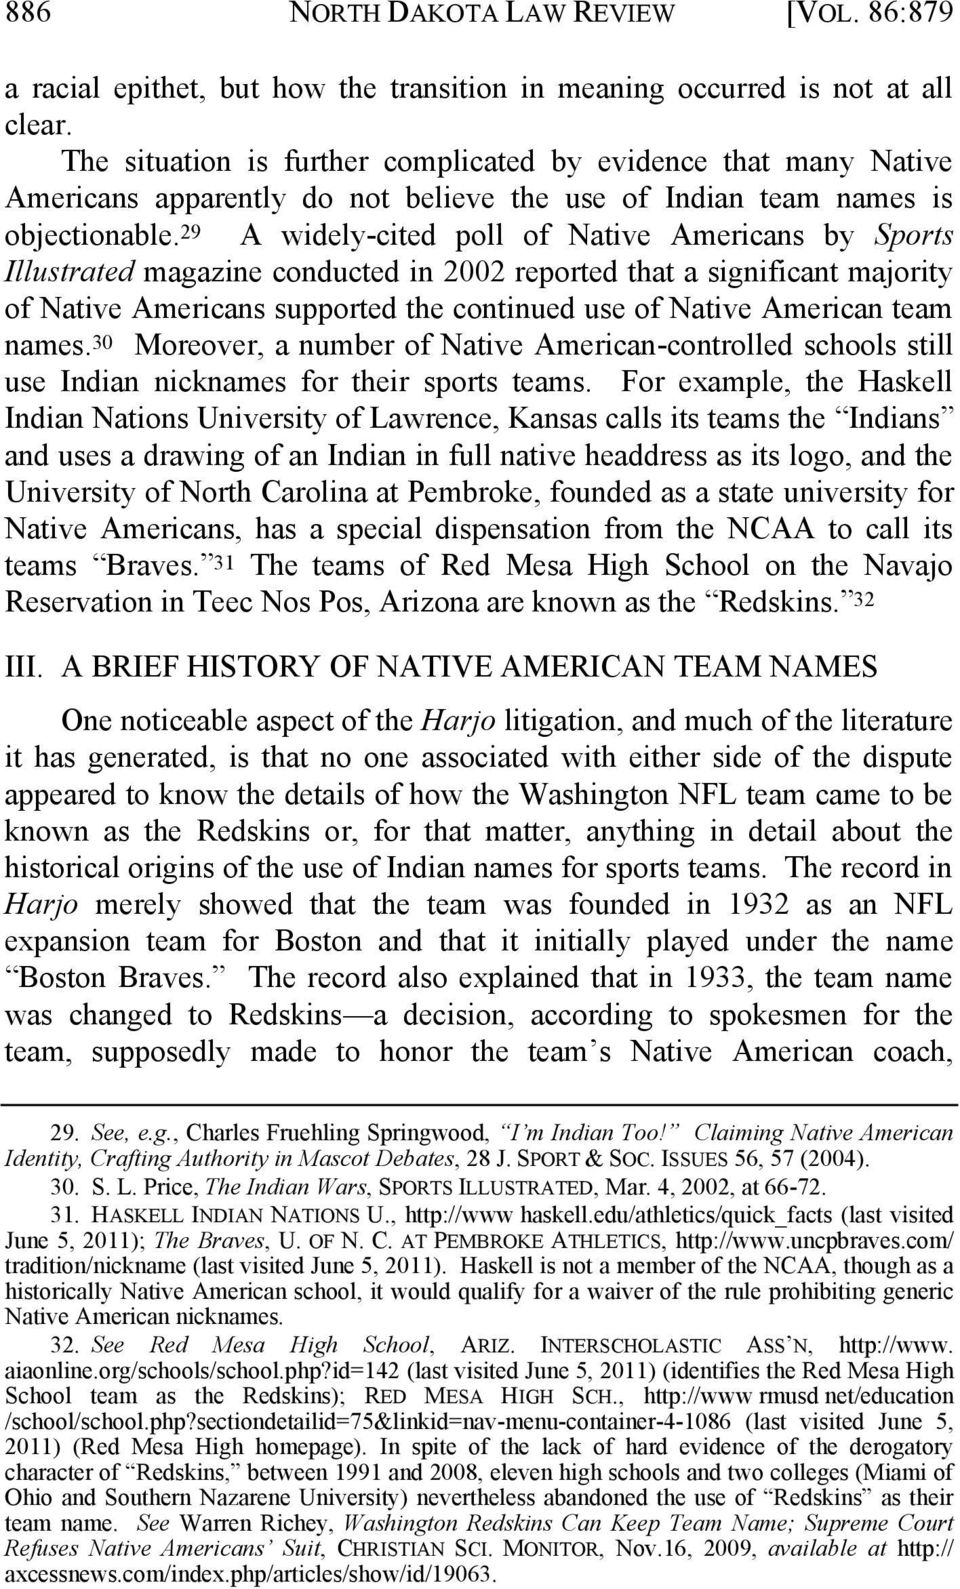 29 A widely-cited poll of Native Americans by Sports Illustrated magazine conducted in 2002 reported that a significant majority of Native Americans supported the continued use of Native American